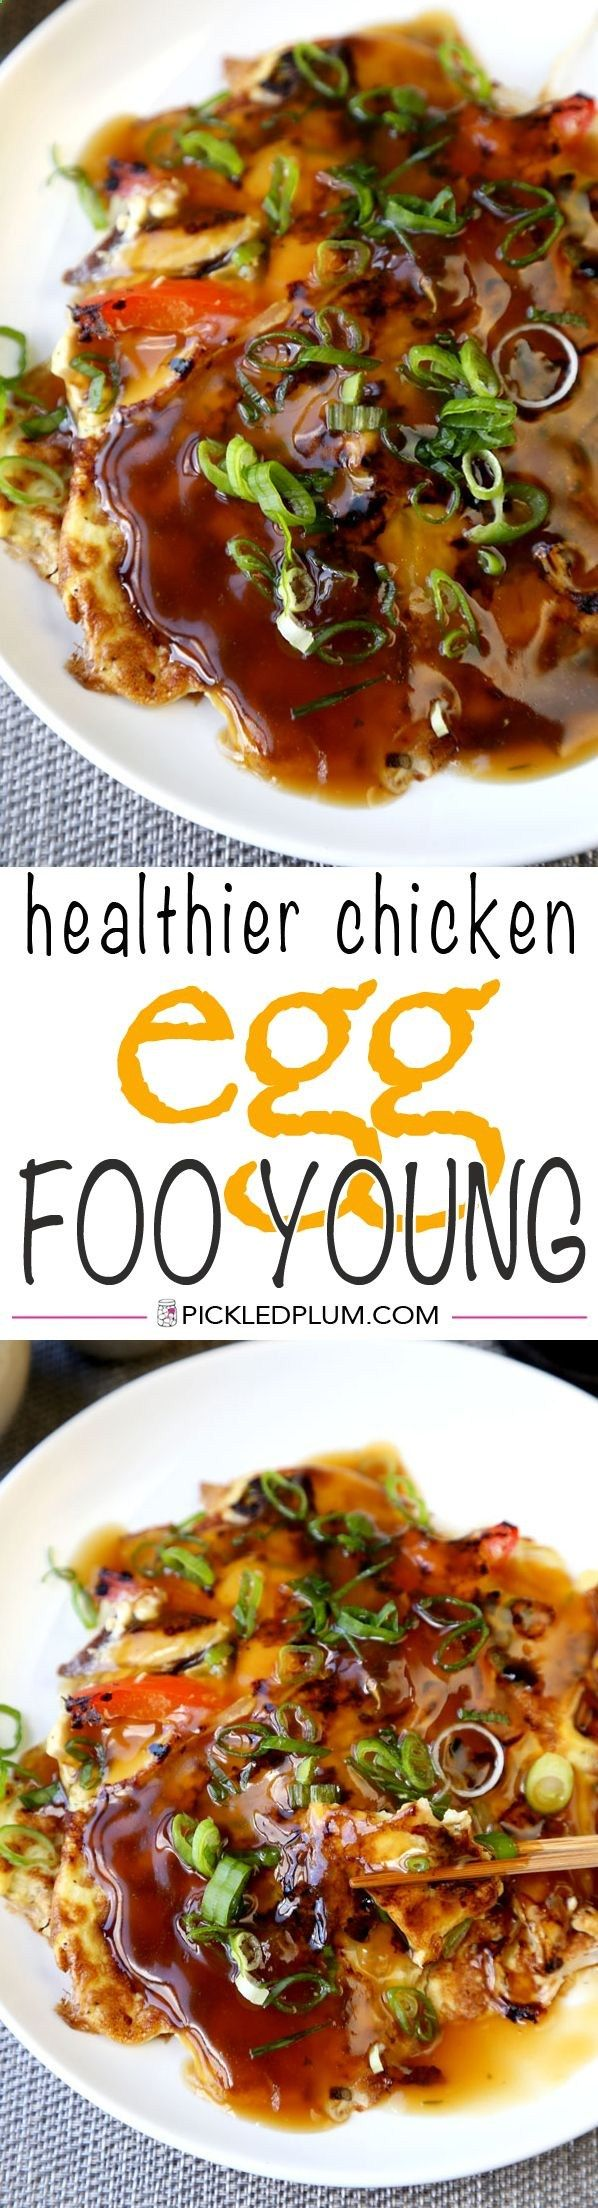 Healthier Chicken Egg Foo Young Recipe - I'm using less oil, more veggies and packing plenty of flavor into these fluffy egg foo young pancakes and gooey brown gravy! www.pickledplum.c...